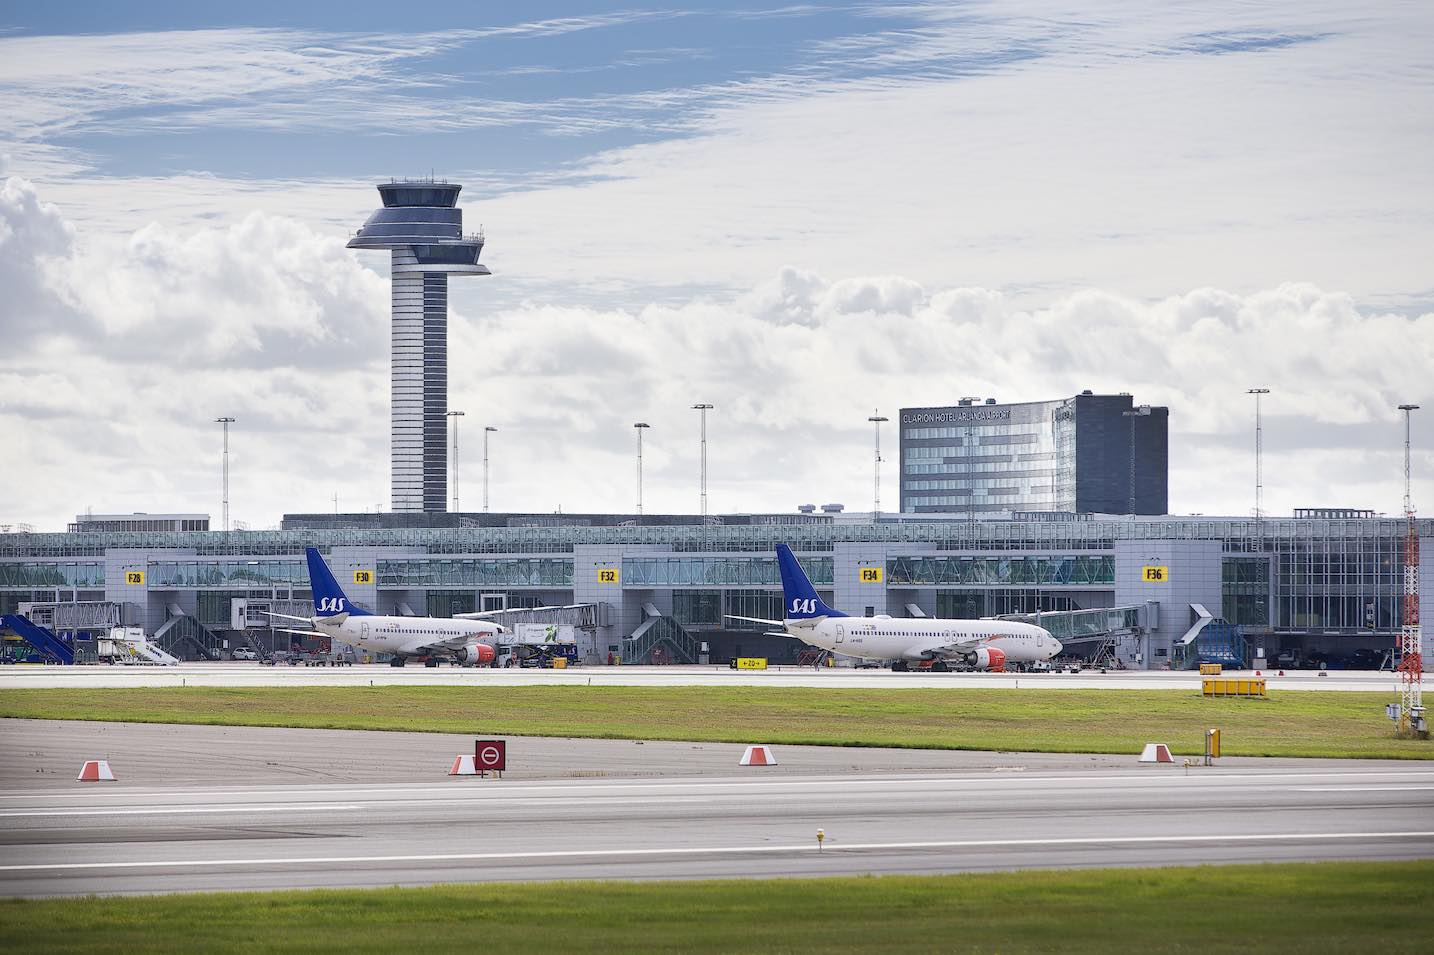 News: Sweden's airports launch green fees for airlines